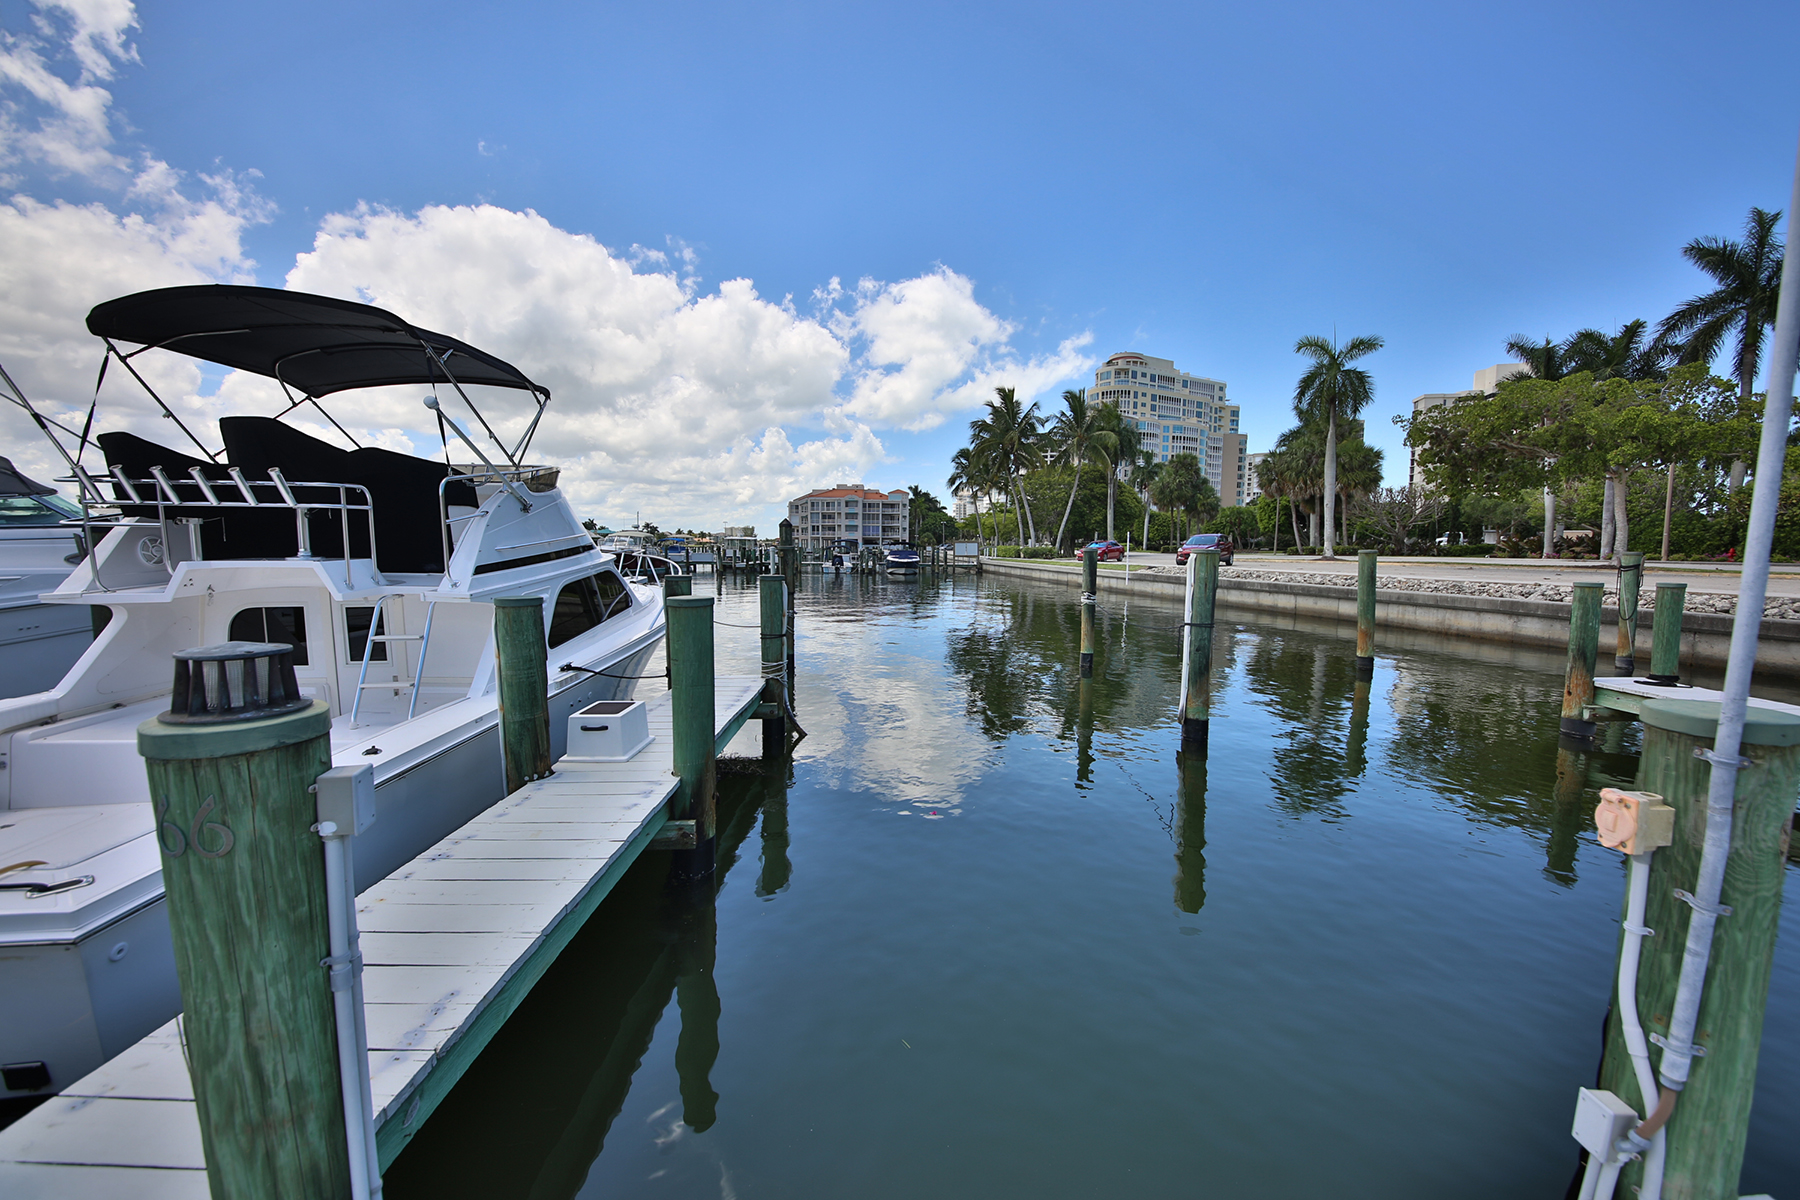 Property For Sale at PARK SHORE - VENETIAN BAY YATCH CLUB